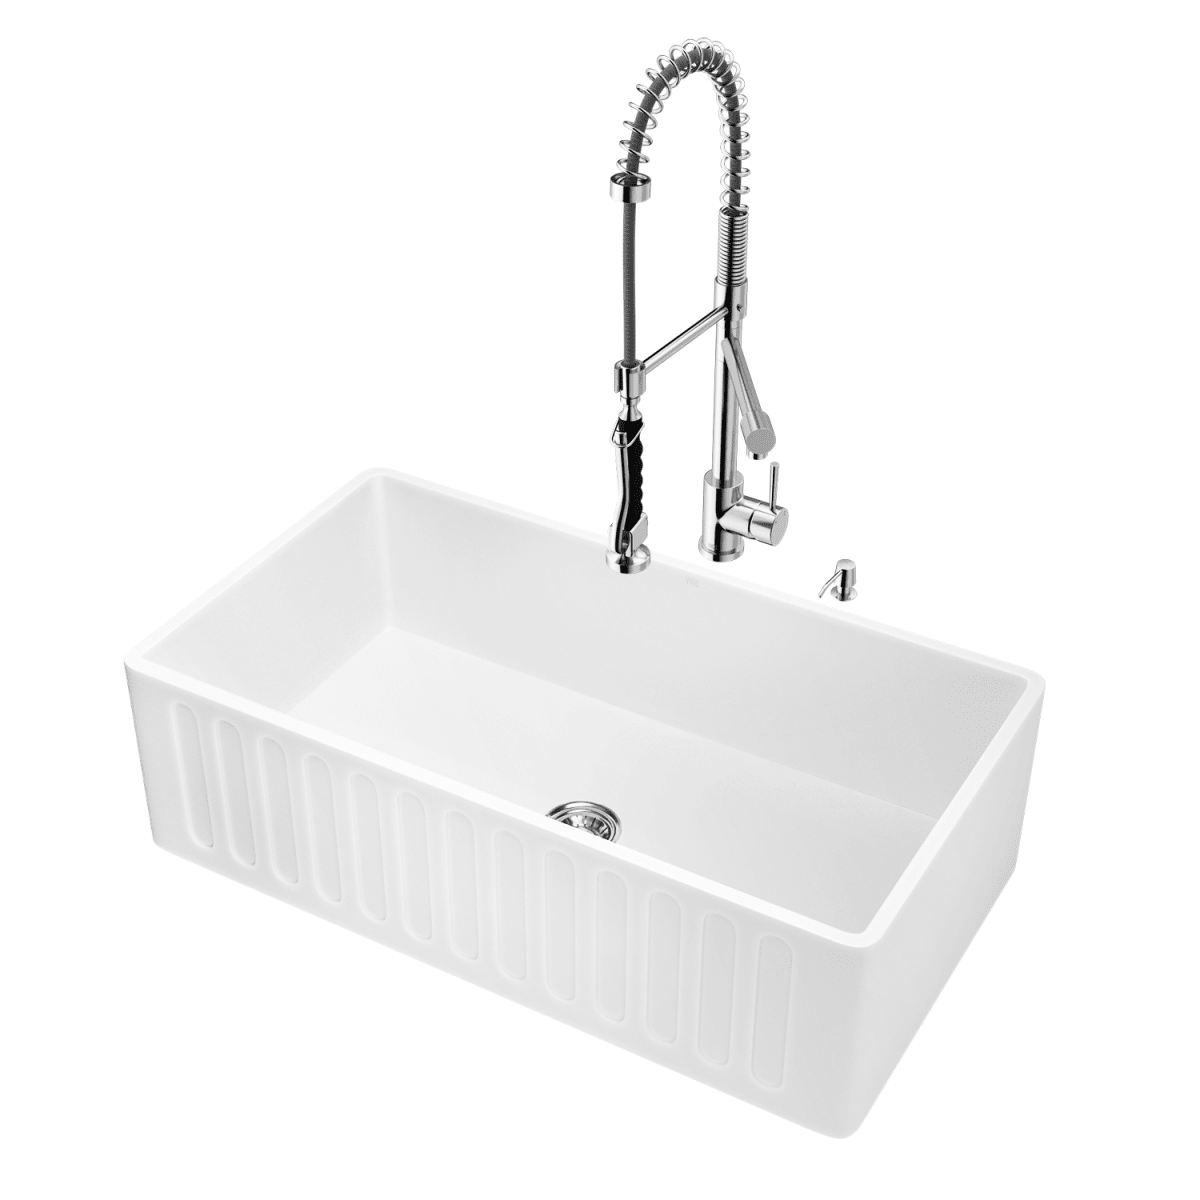 Vigo Vg15457 Stainless Steel Chrome 33 Single Basin Farmhouse Matte Stone Kitchen Sink With Zurich Chrome Faucet Soap Dispenser Basket Strainer And Cutting Board Faucetdirect Com